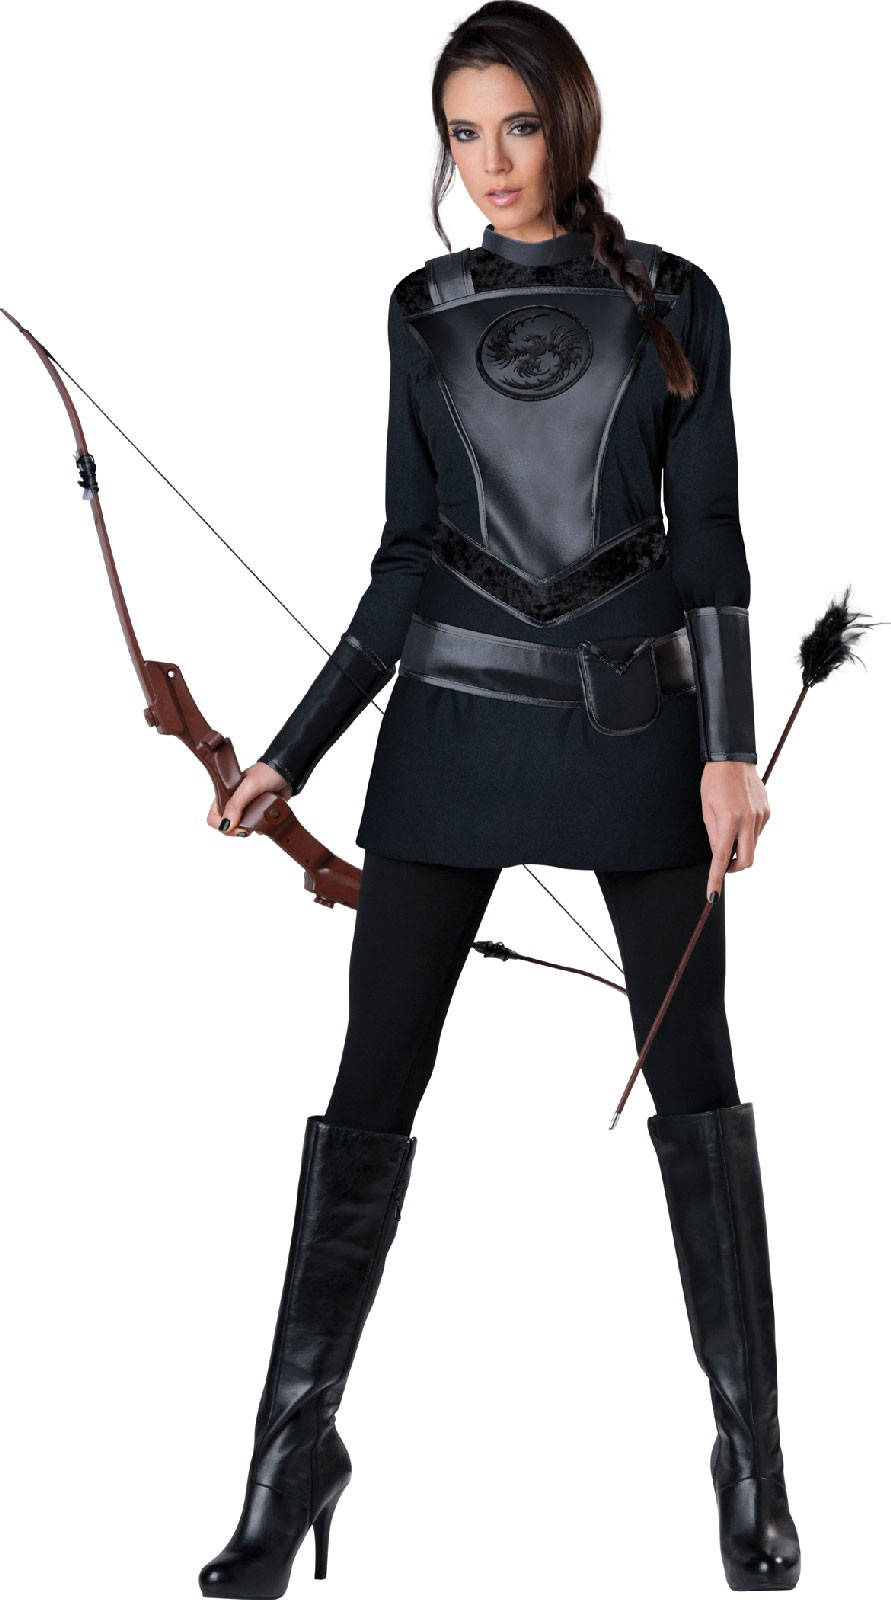 warrior huntress adults costume | costumes.au